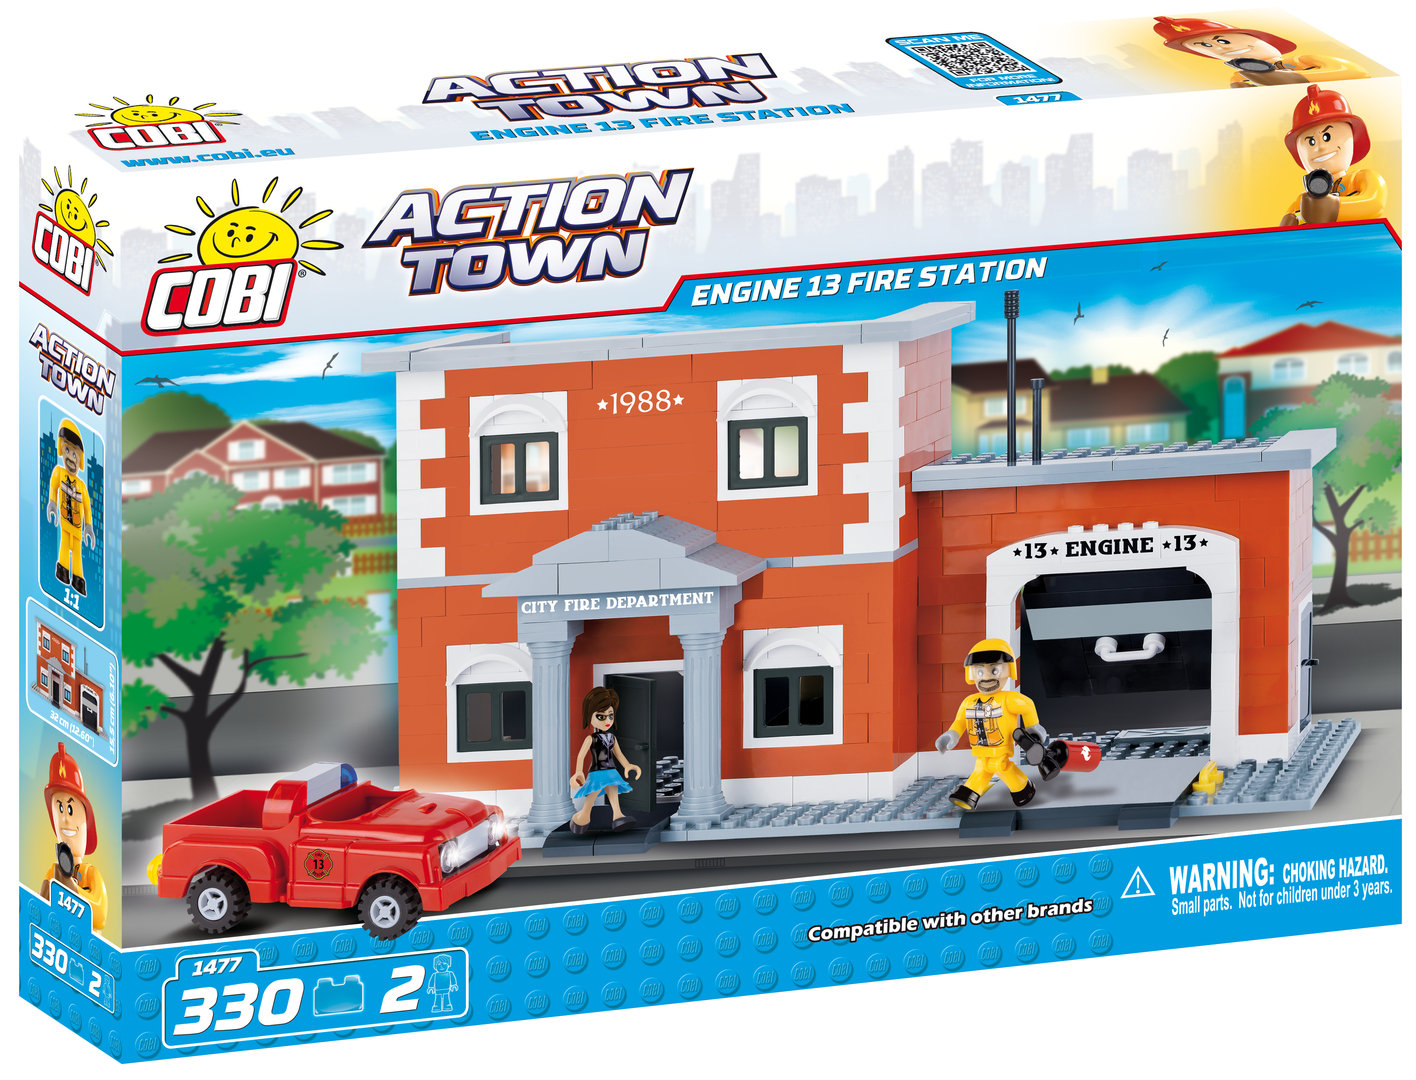 Cobi Feuerwehrstation Engine 13 Fire Station (Action Town)